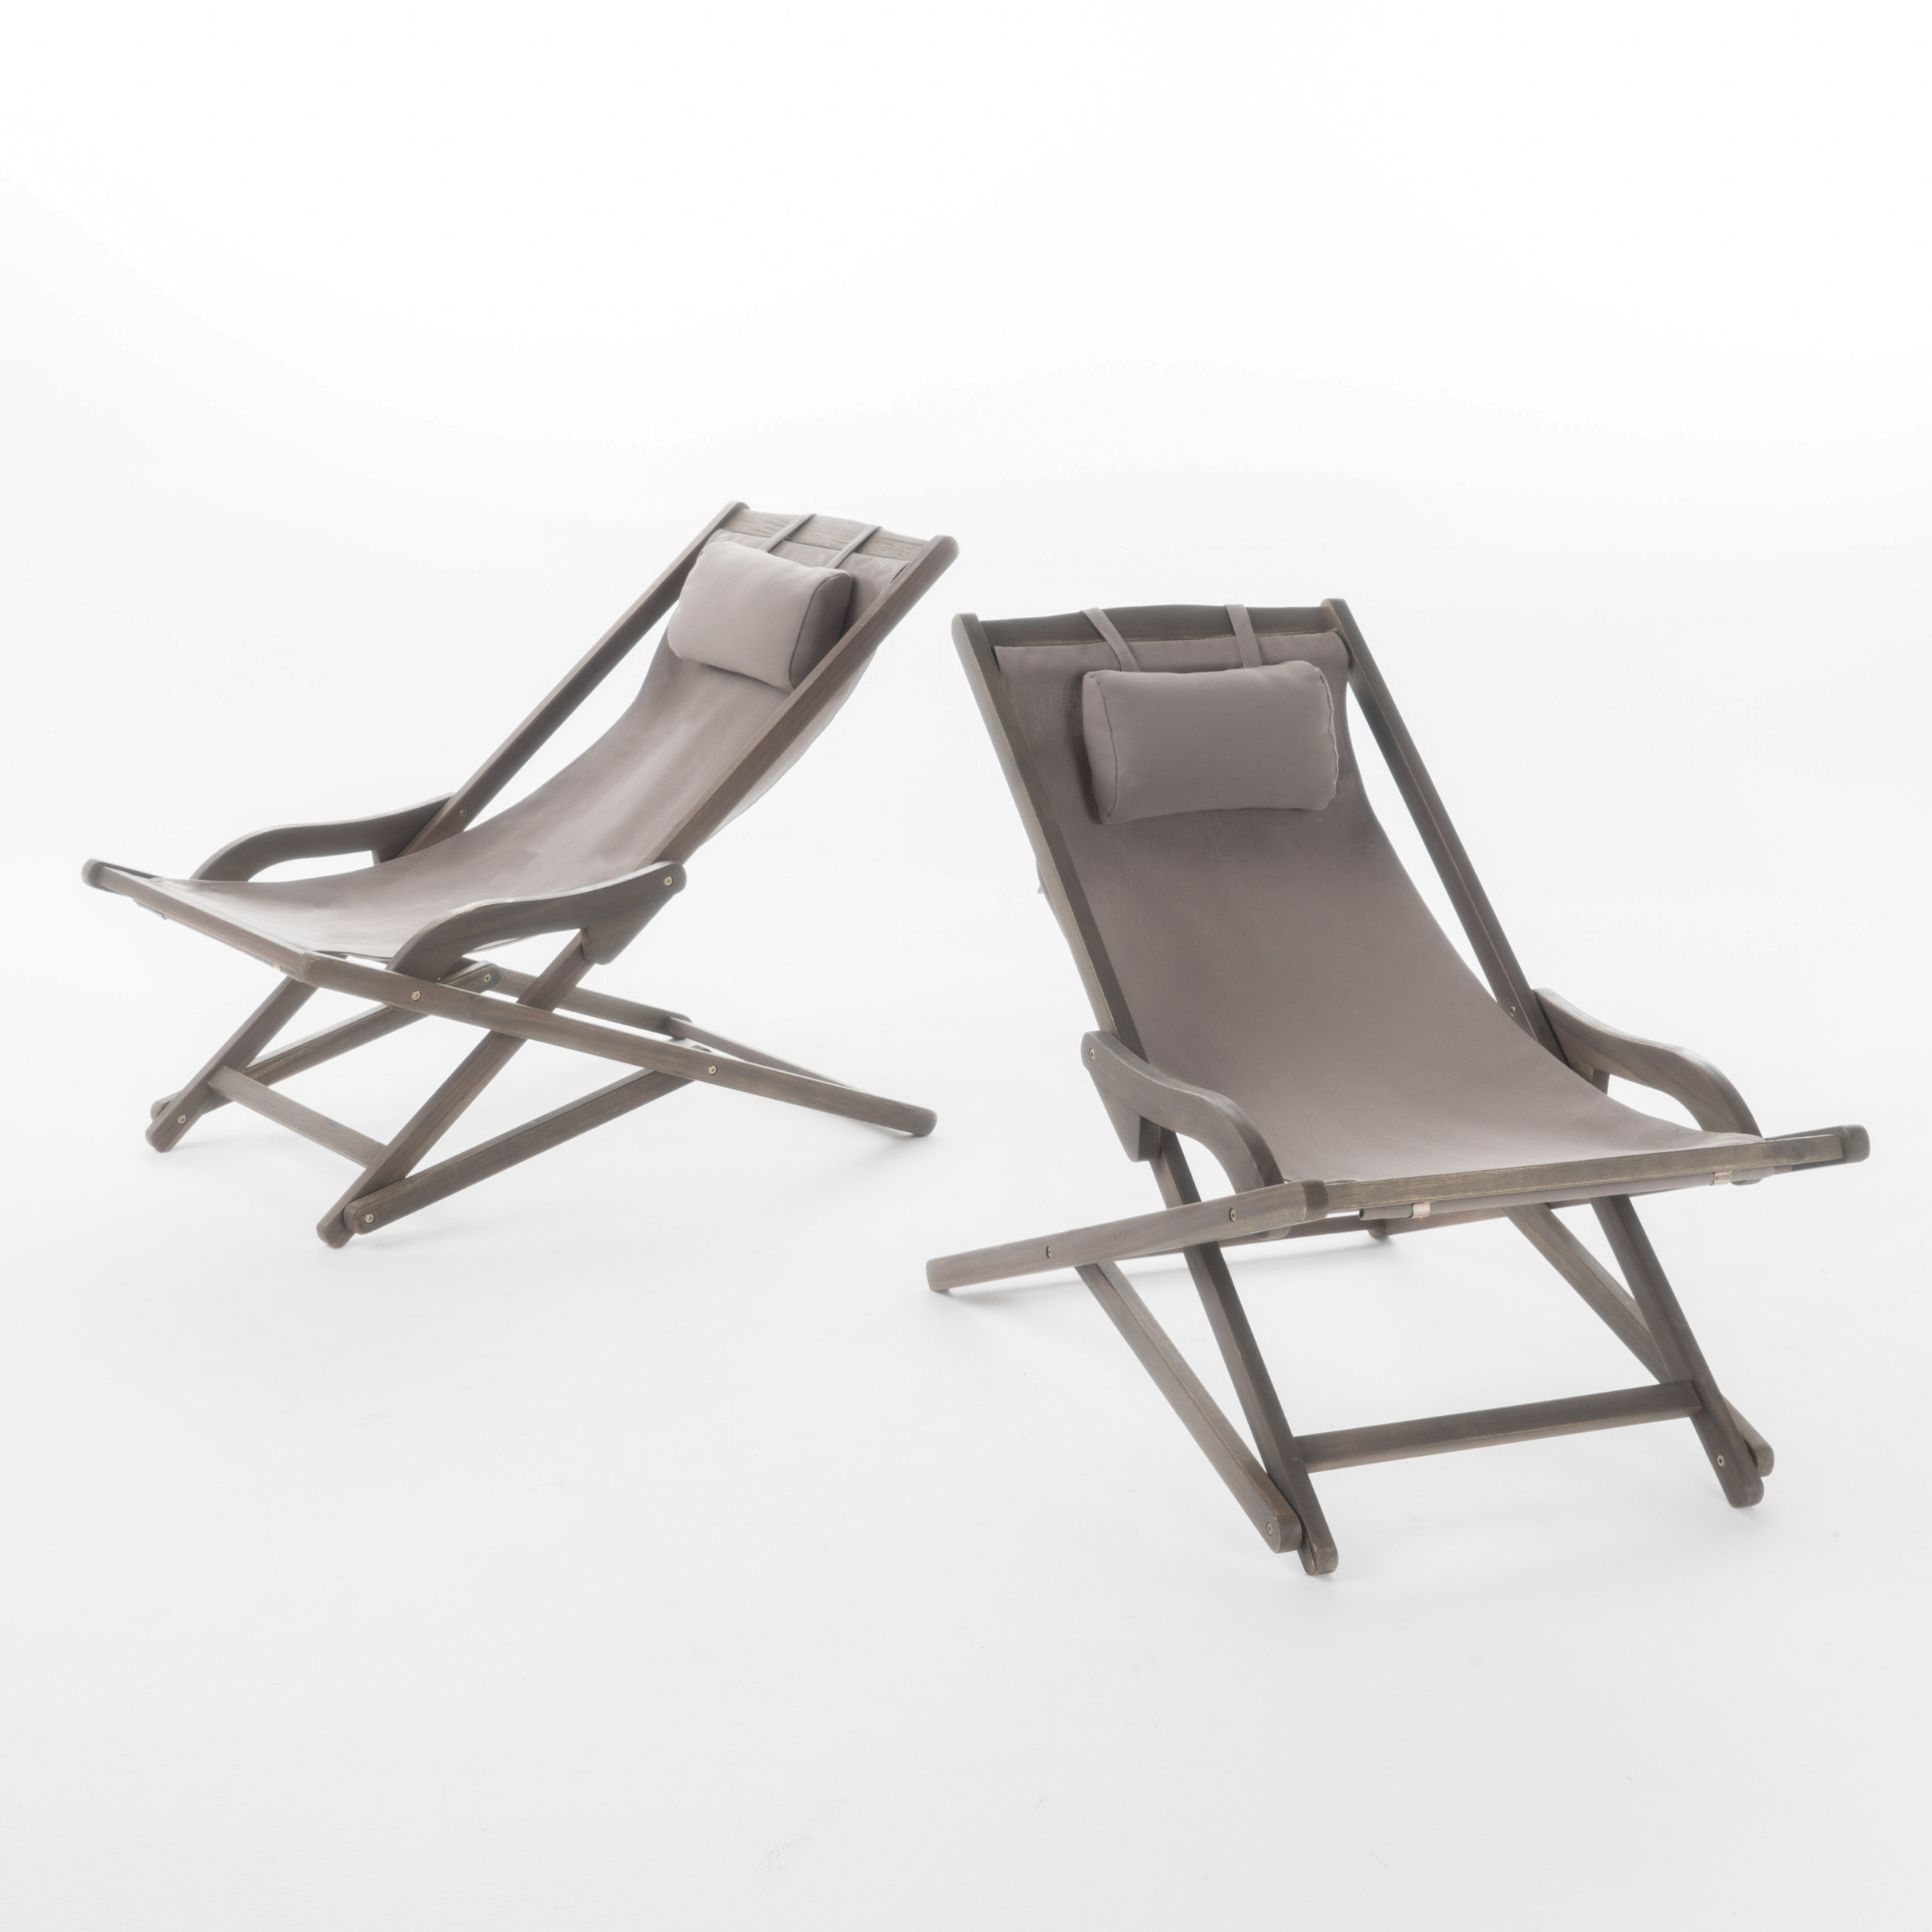 Northland Outdoor Wood And Canvas Sling Chair, Set Of 2, Grey